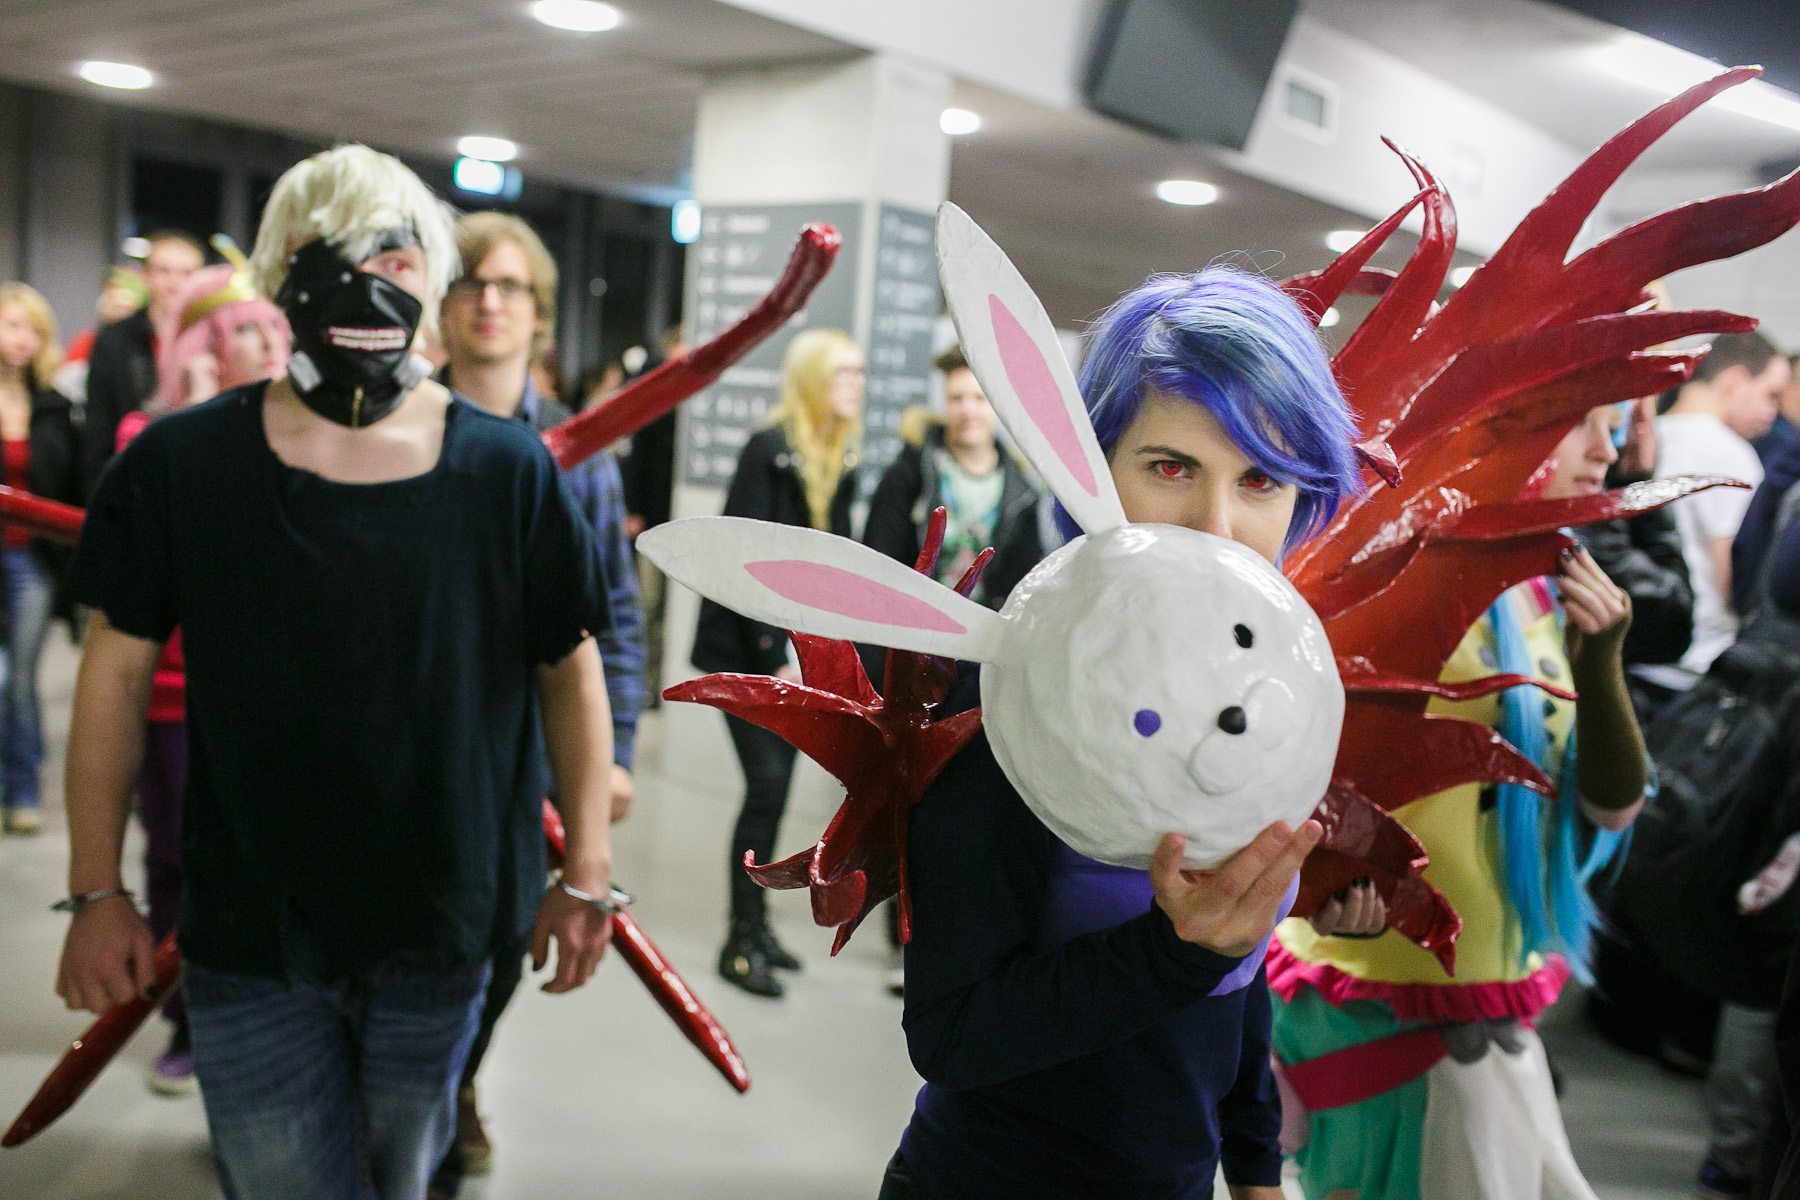 Cosplayers participate in the 4th Makkon, the largest Slovenian anime event, in Ljubljana, Slovenia, Dec. 12, 2015.